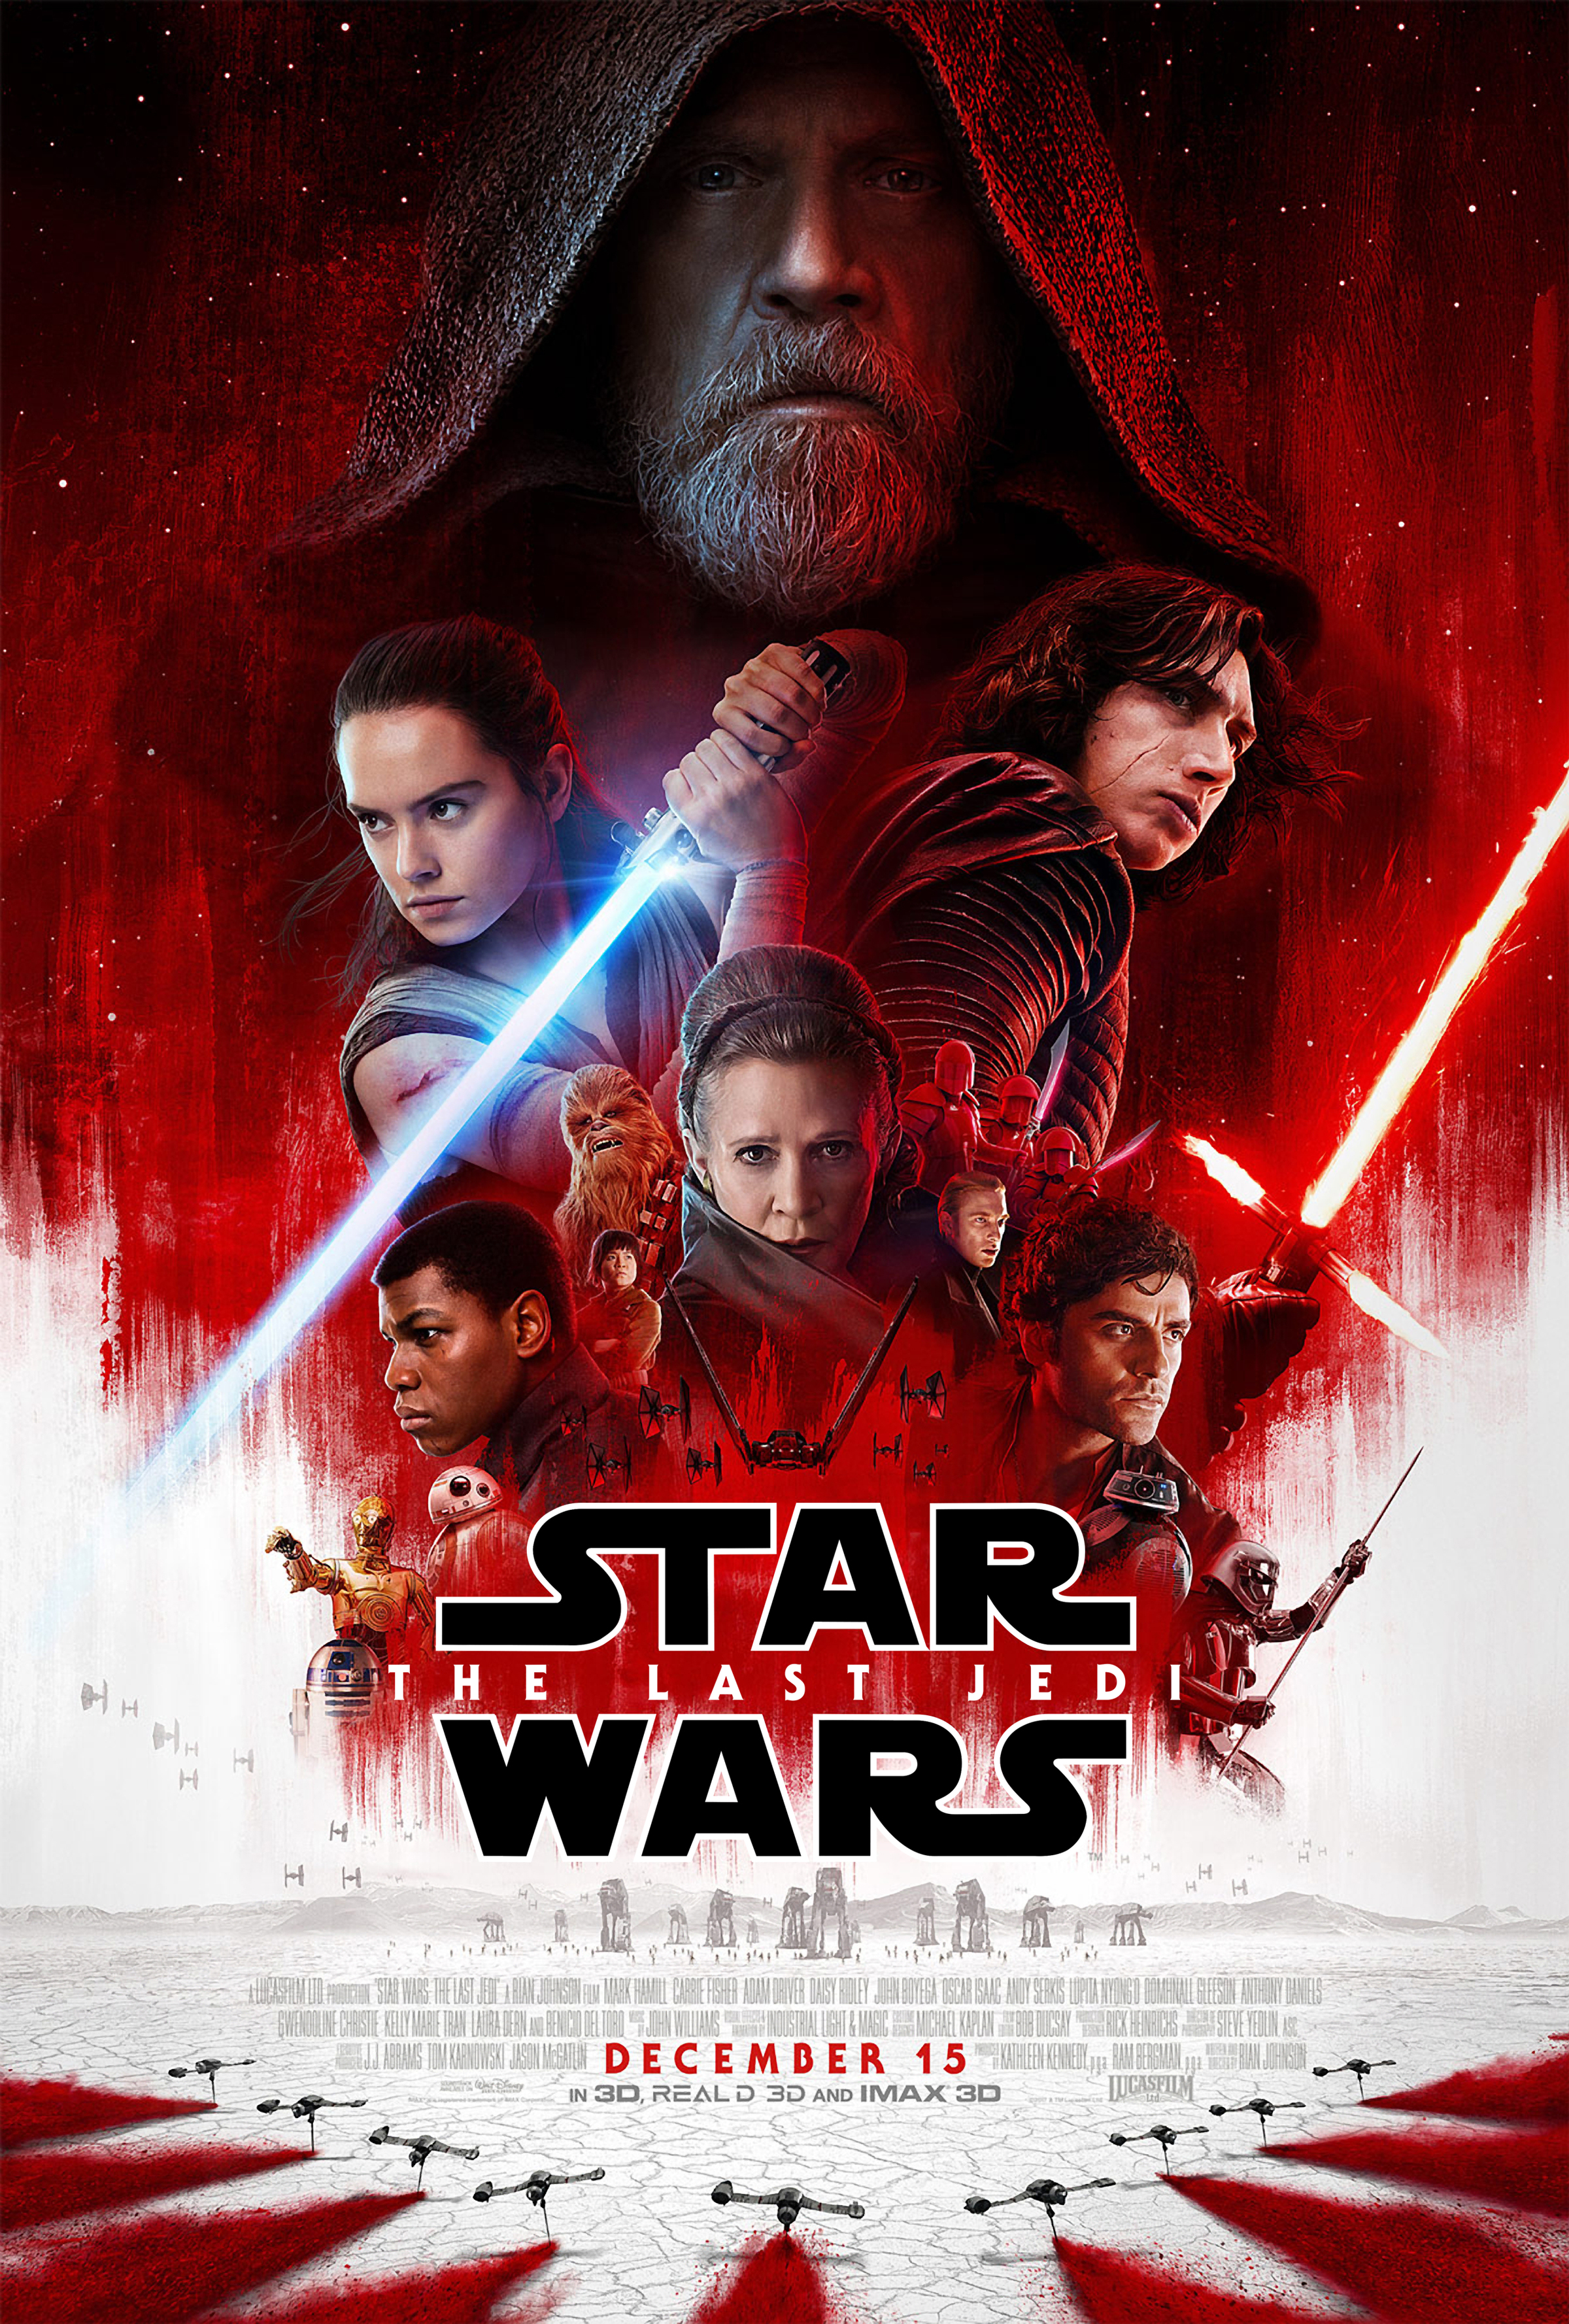 The Last Jedi Official Theatrical Poster Hi Res Large Hd Geek Carl